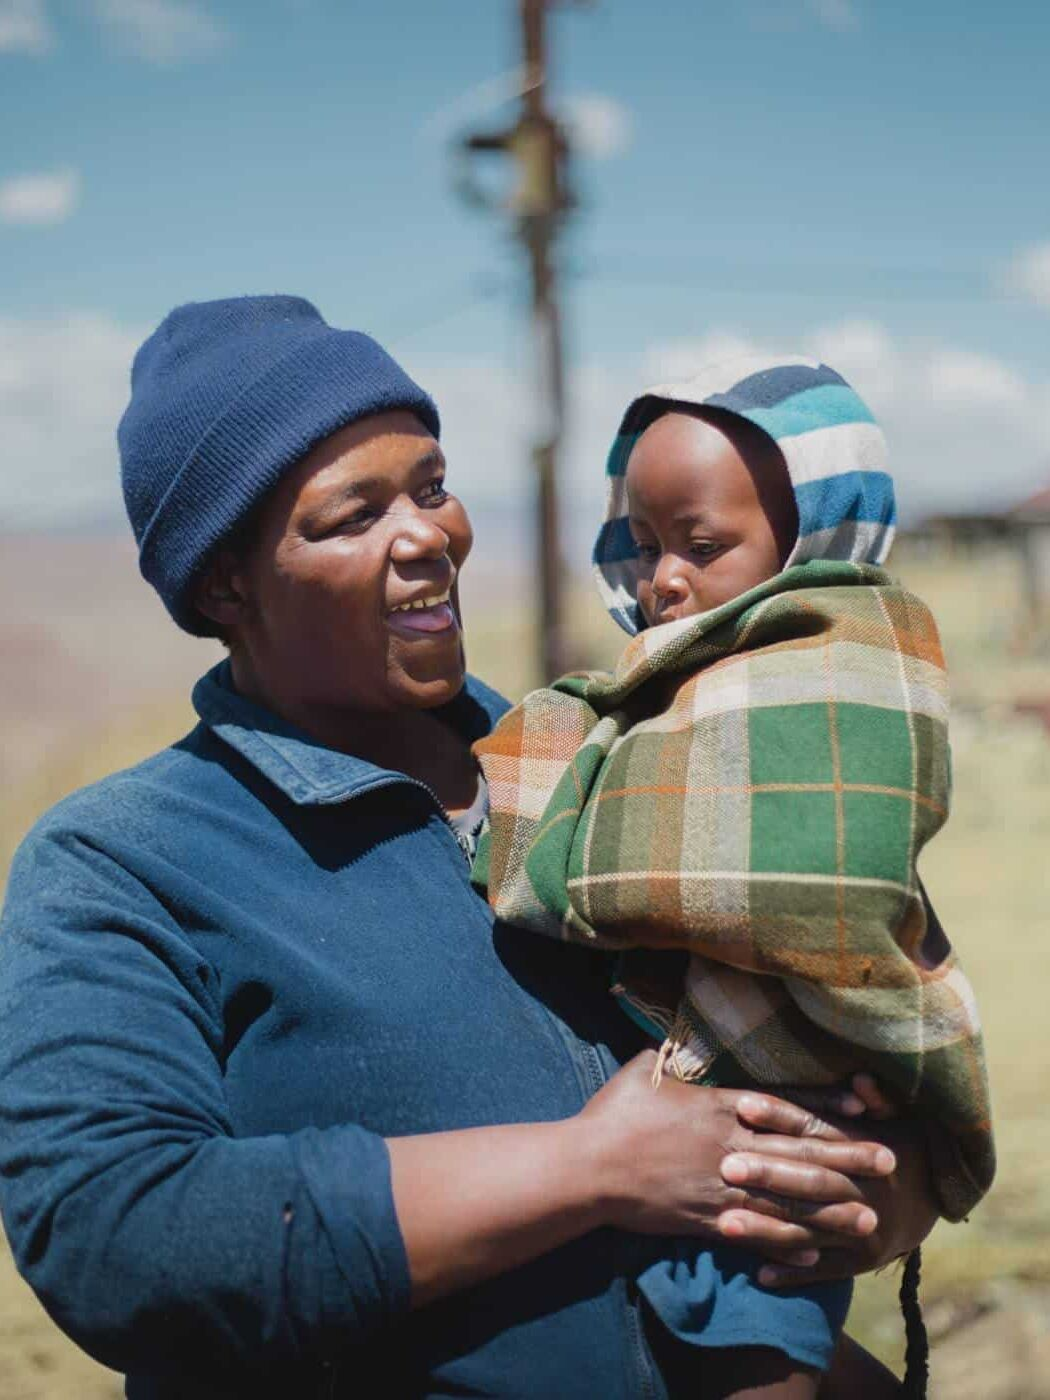 Pictures of Lesotho mother and child